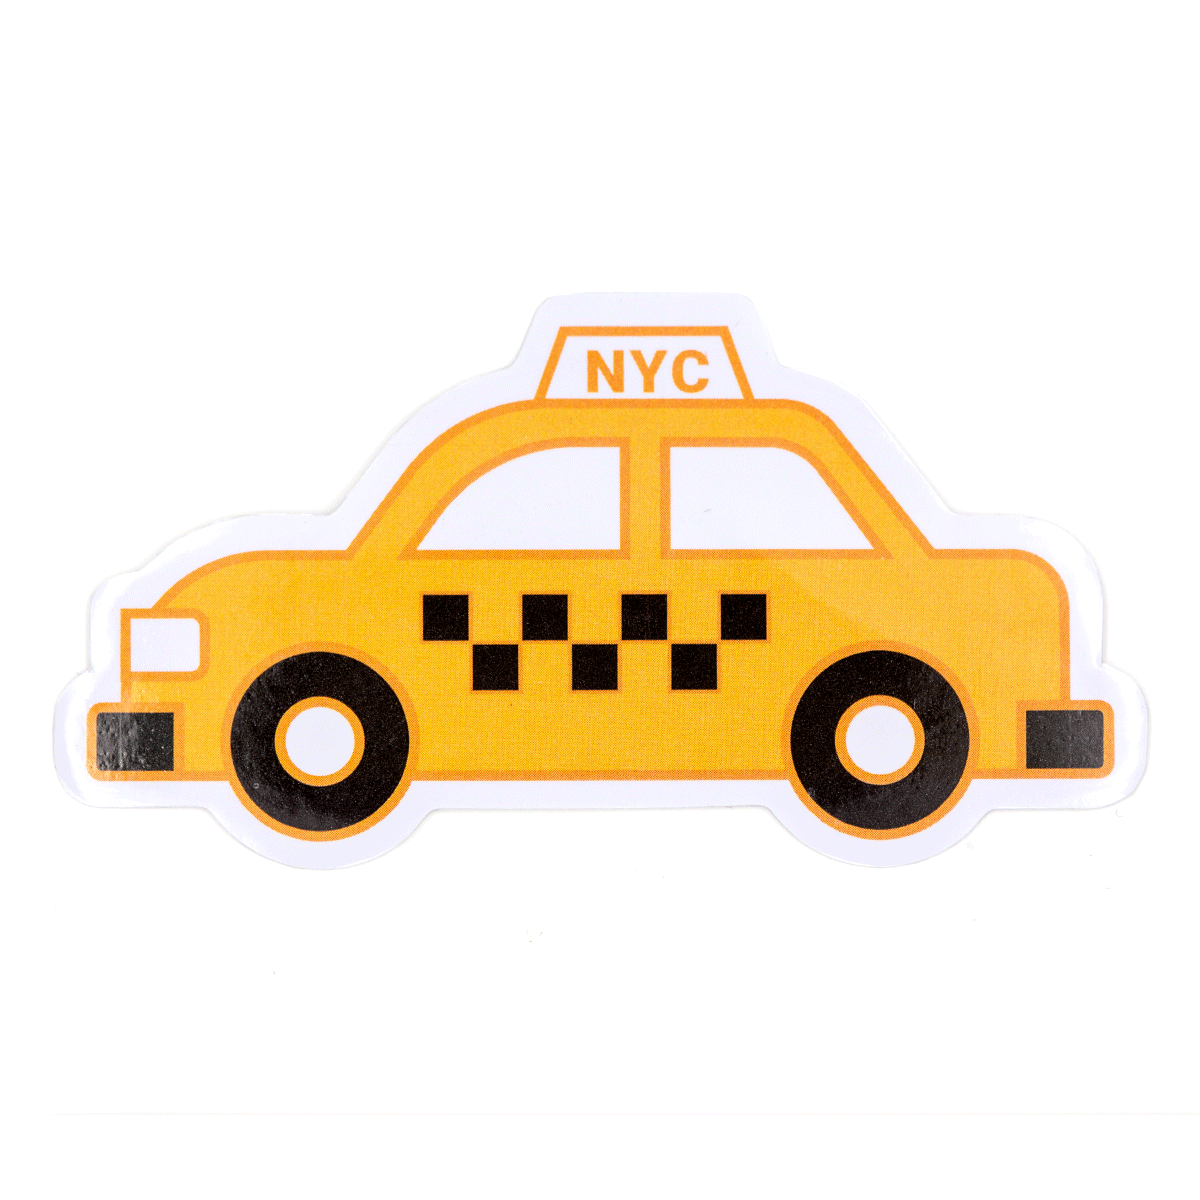 NYC Taxi Vinyl Sticker